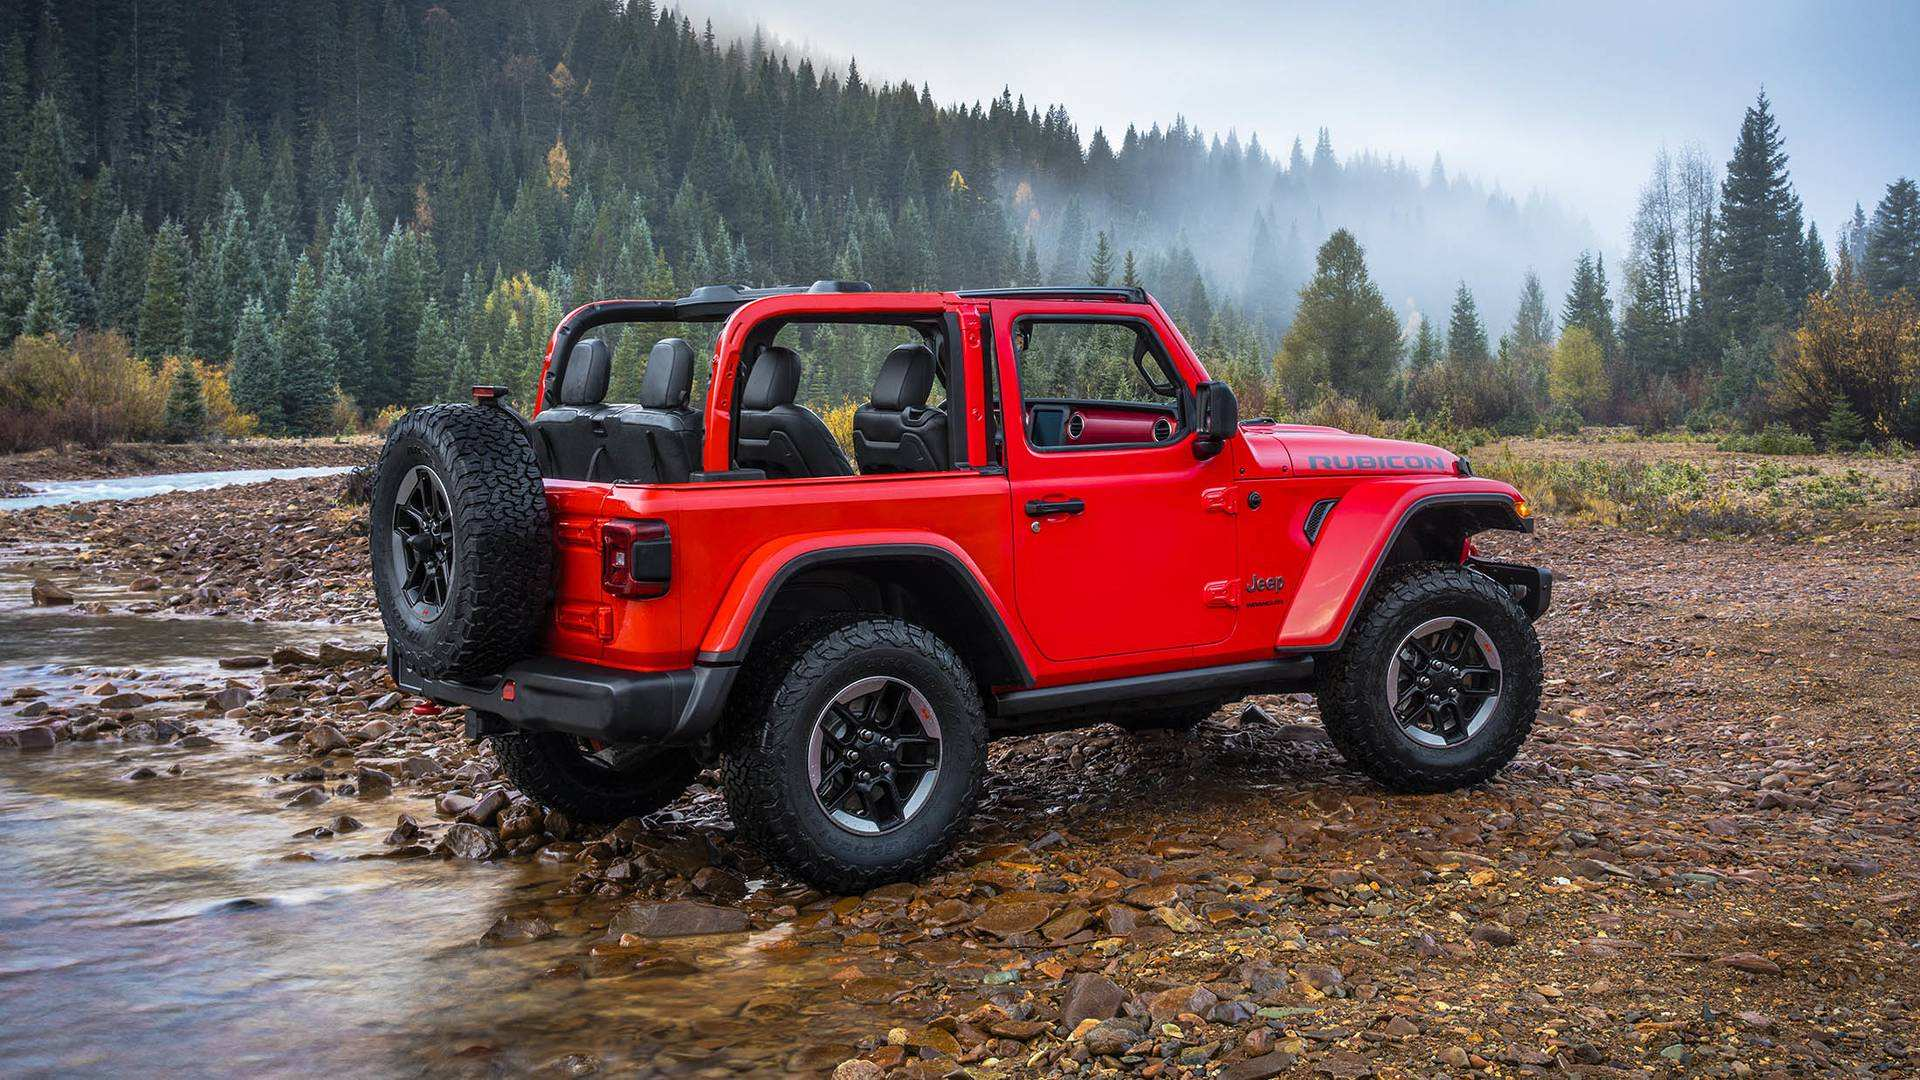 35 Gallery of When Will 2020 Jeep Wrangler Be Available Style by When Will 2020 Jeep Wrangler Be Available